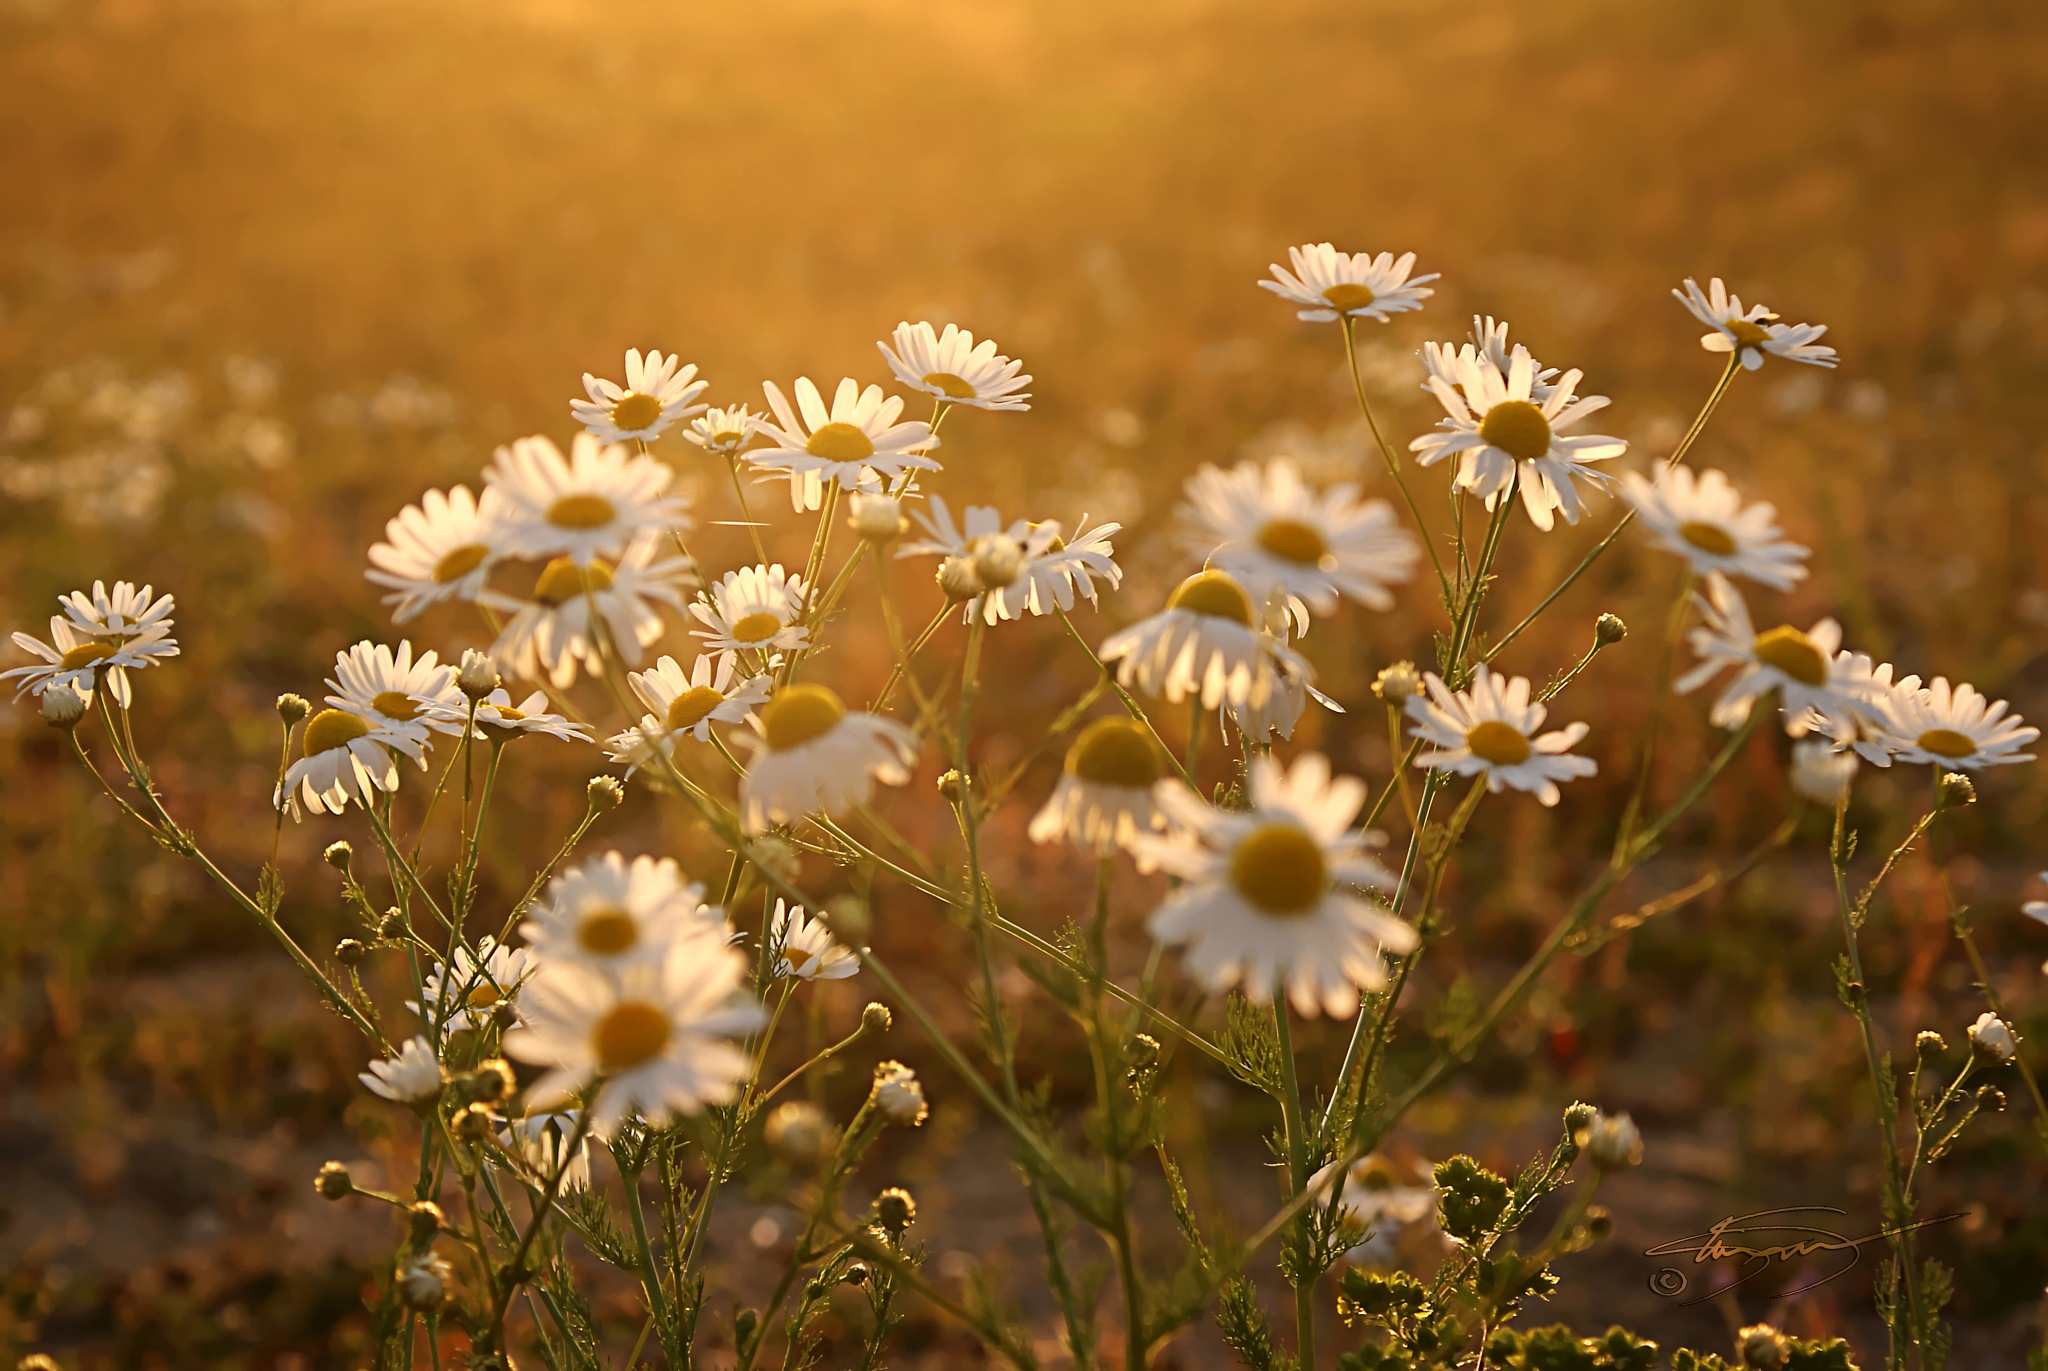 Granby Wildflowers  by KandisG